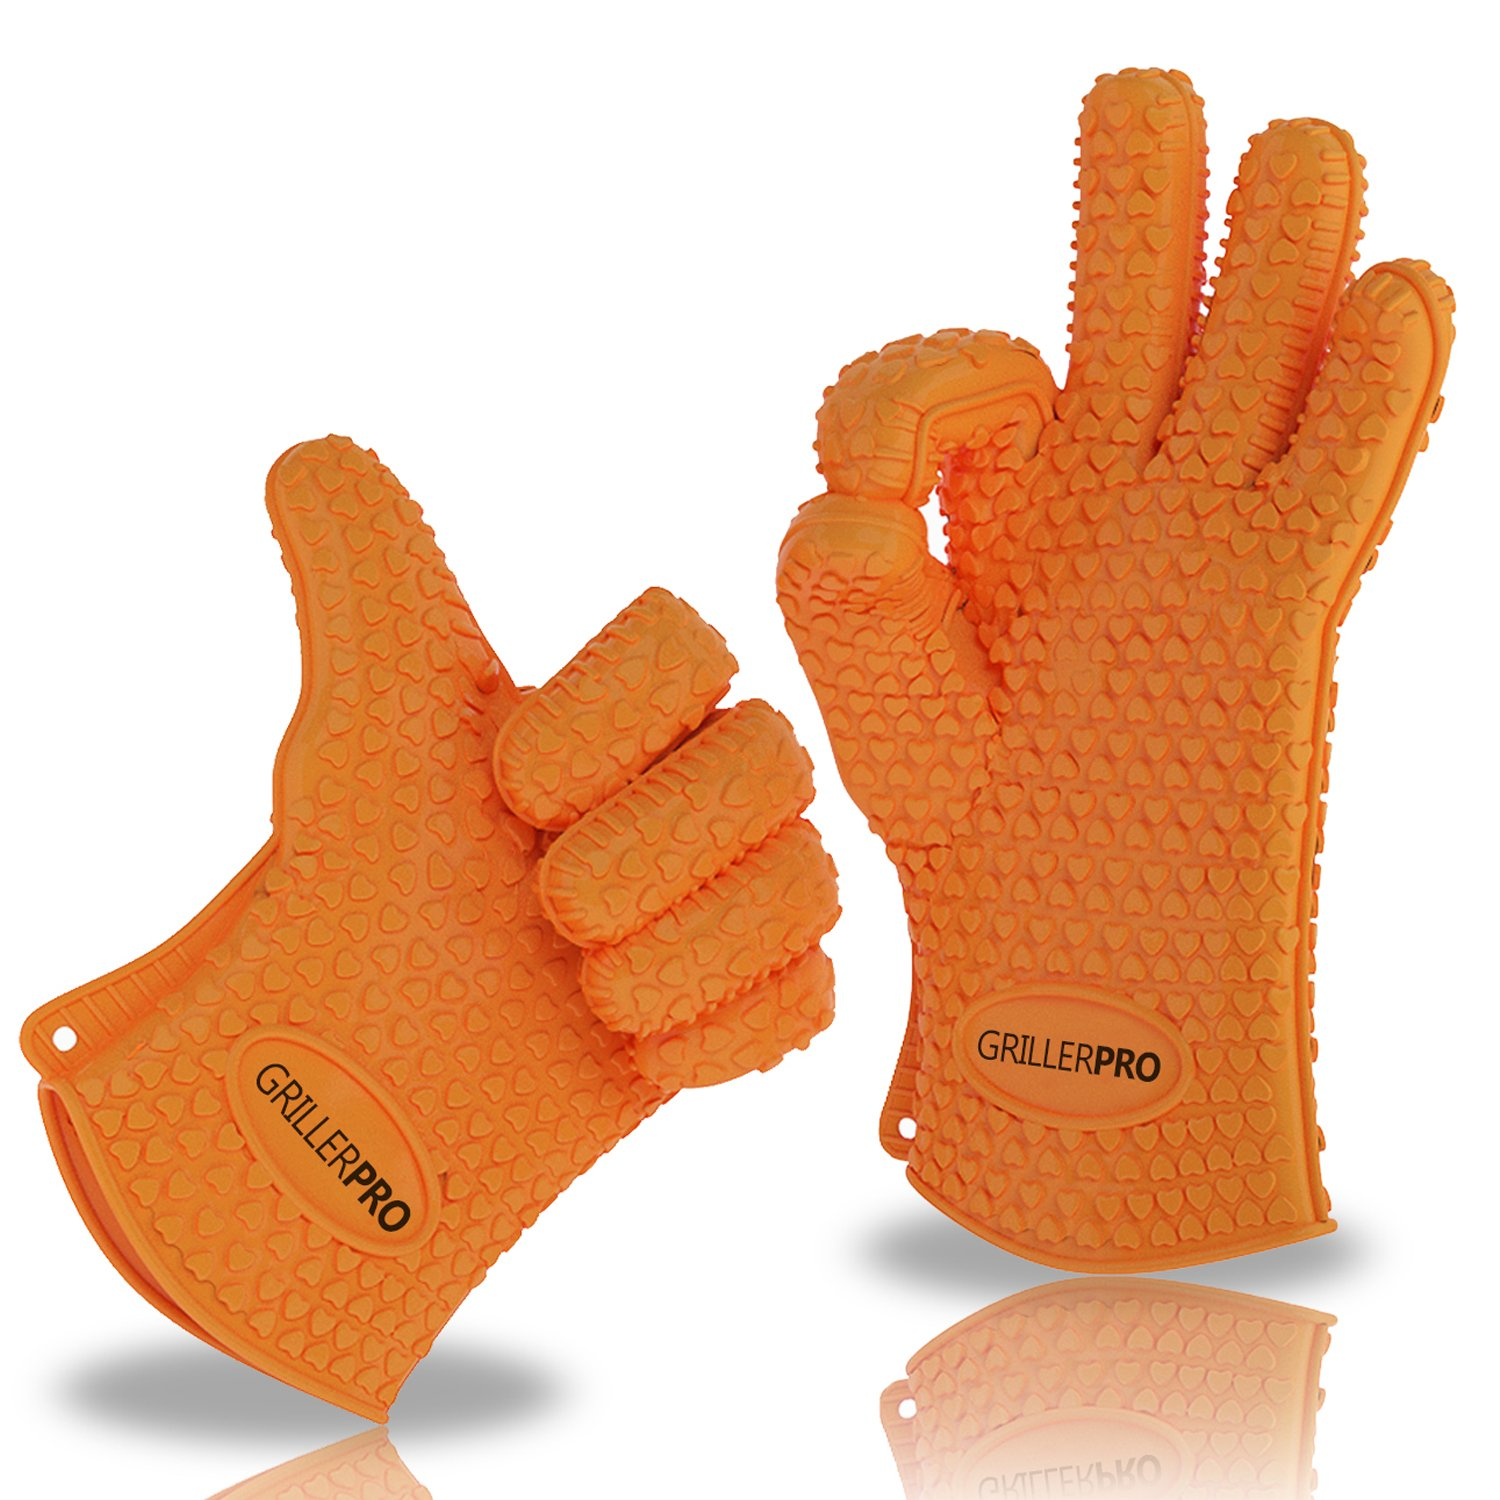 Griller PRO Silicone Gloves - Heat Resistant Oven Mitts, Pot Holders and BBQ Grill Gloves - For Grilling, Baking & Barbecue - Lifetime Guarantee